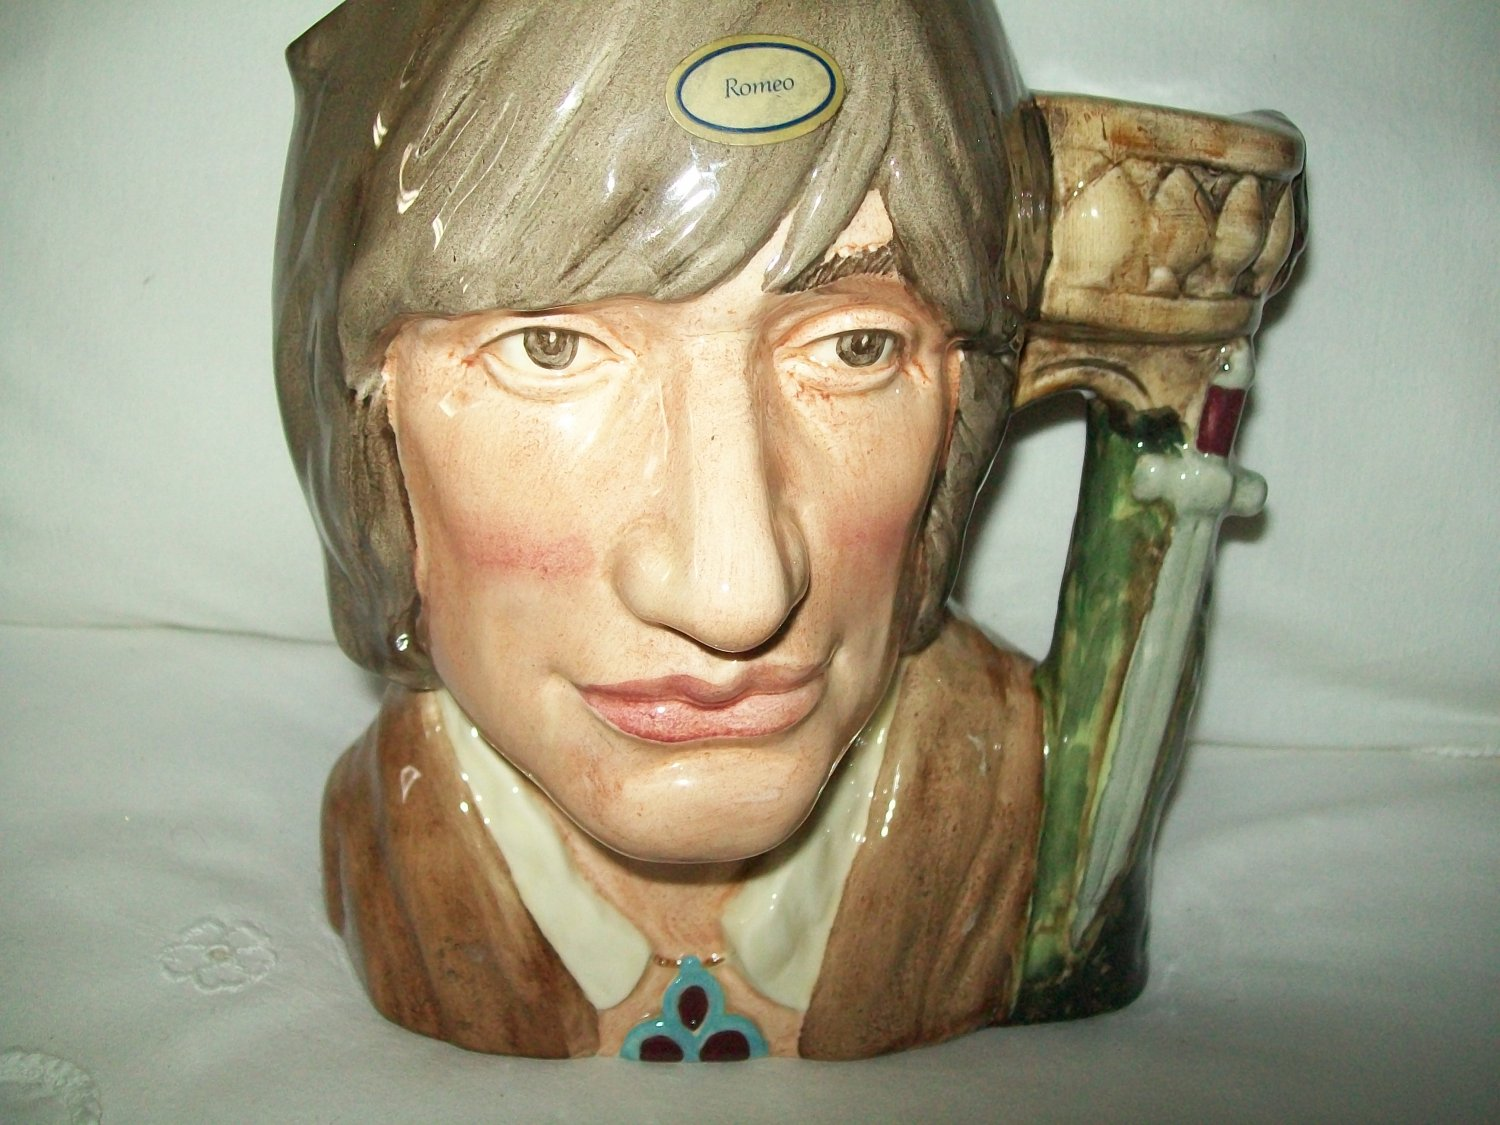 """Toby jug stands 7 1/2"""" tall and 6 1/2"""" wide. Romeo shakespearian collection"""